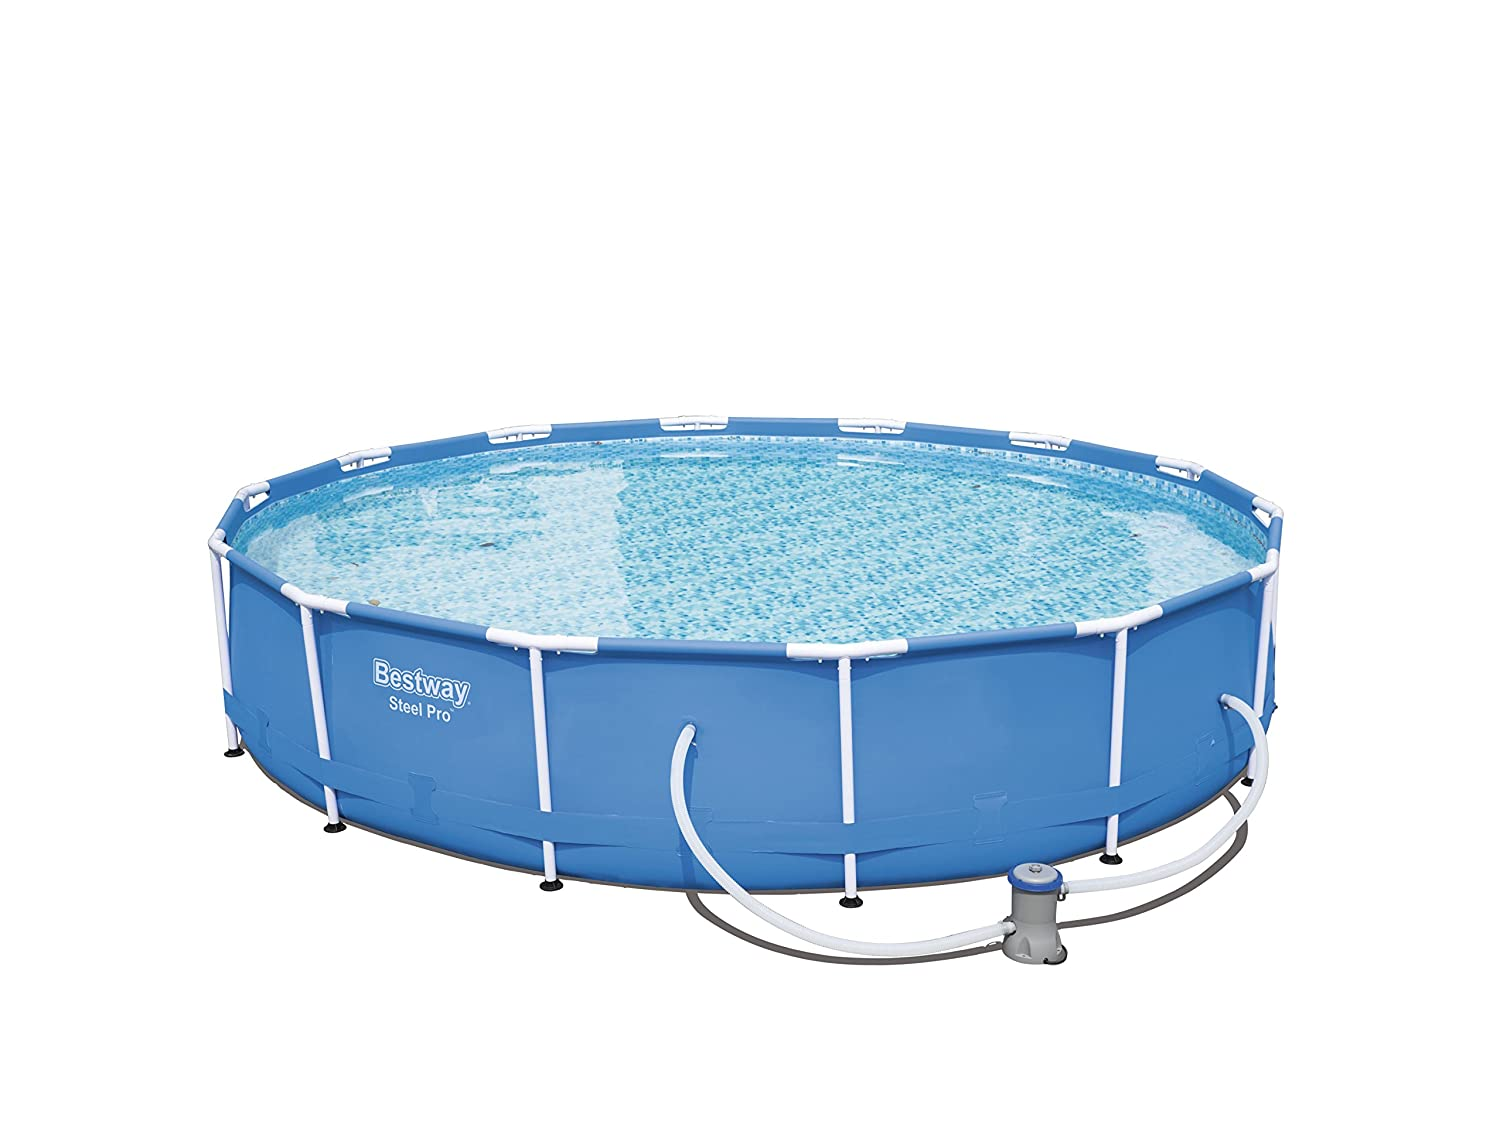 Bestway Steel Pro Frame Pool Set with Filter Pump 56595-BGSX16EX02